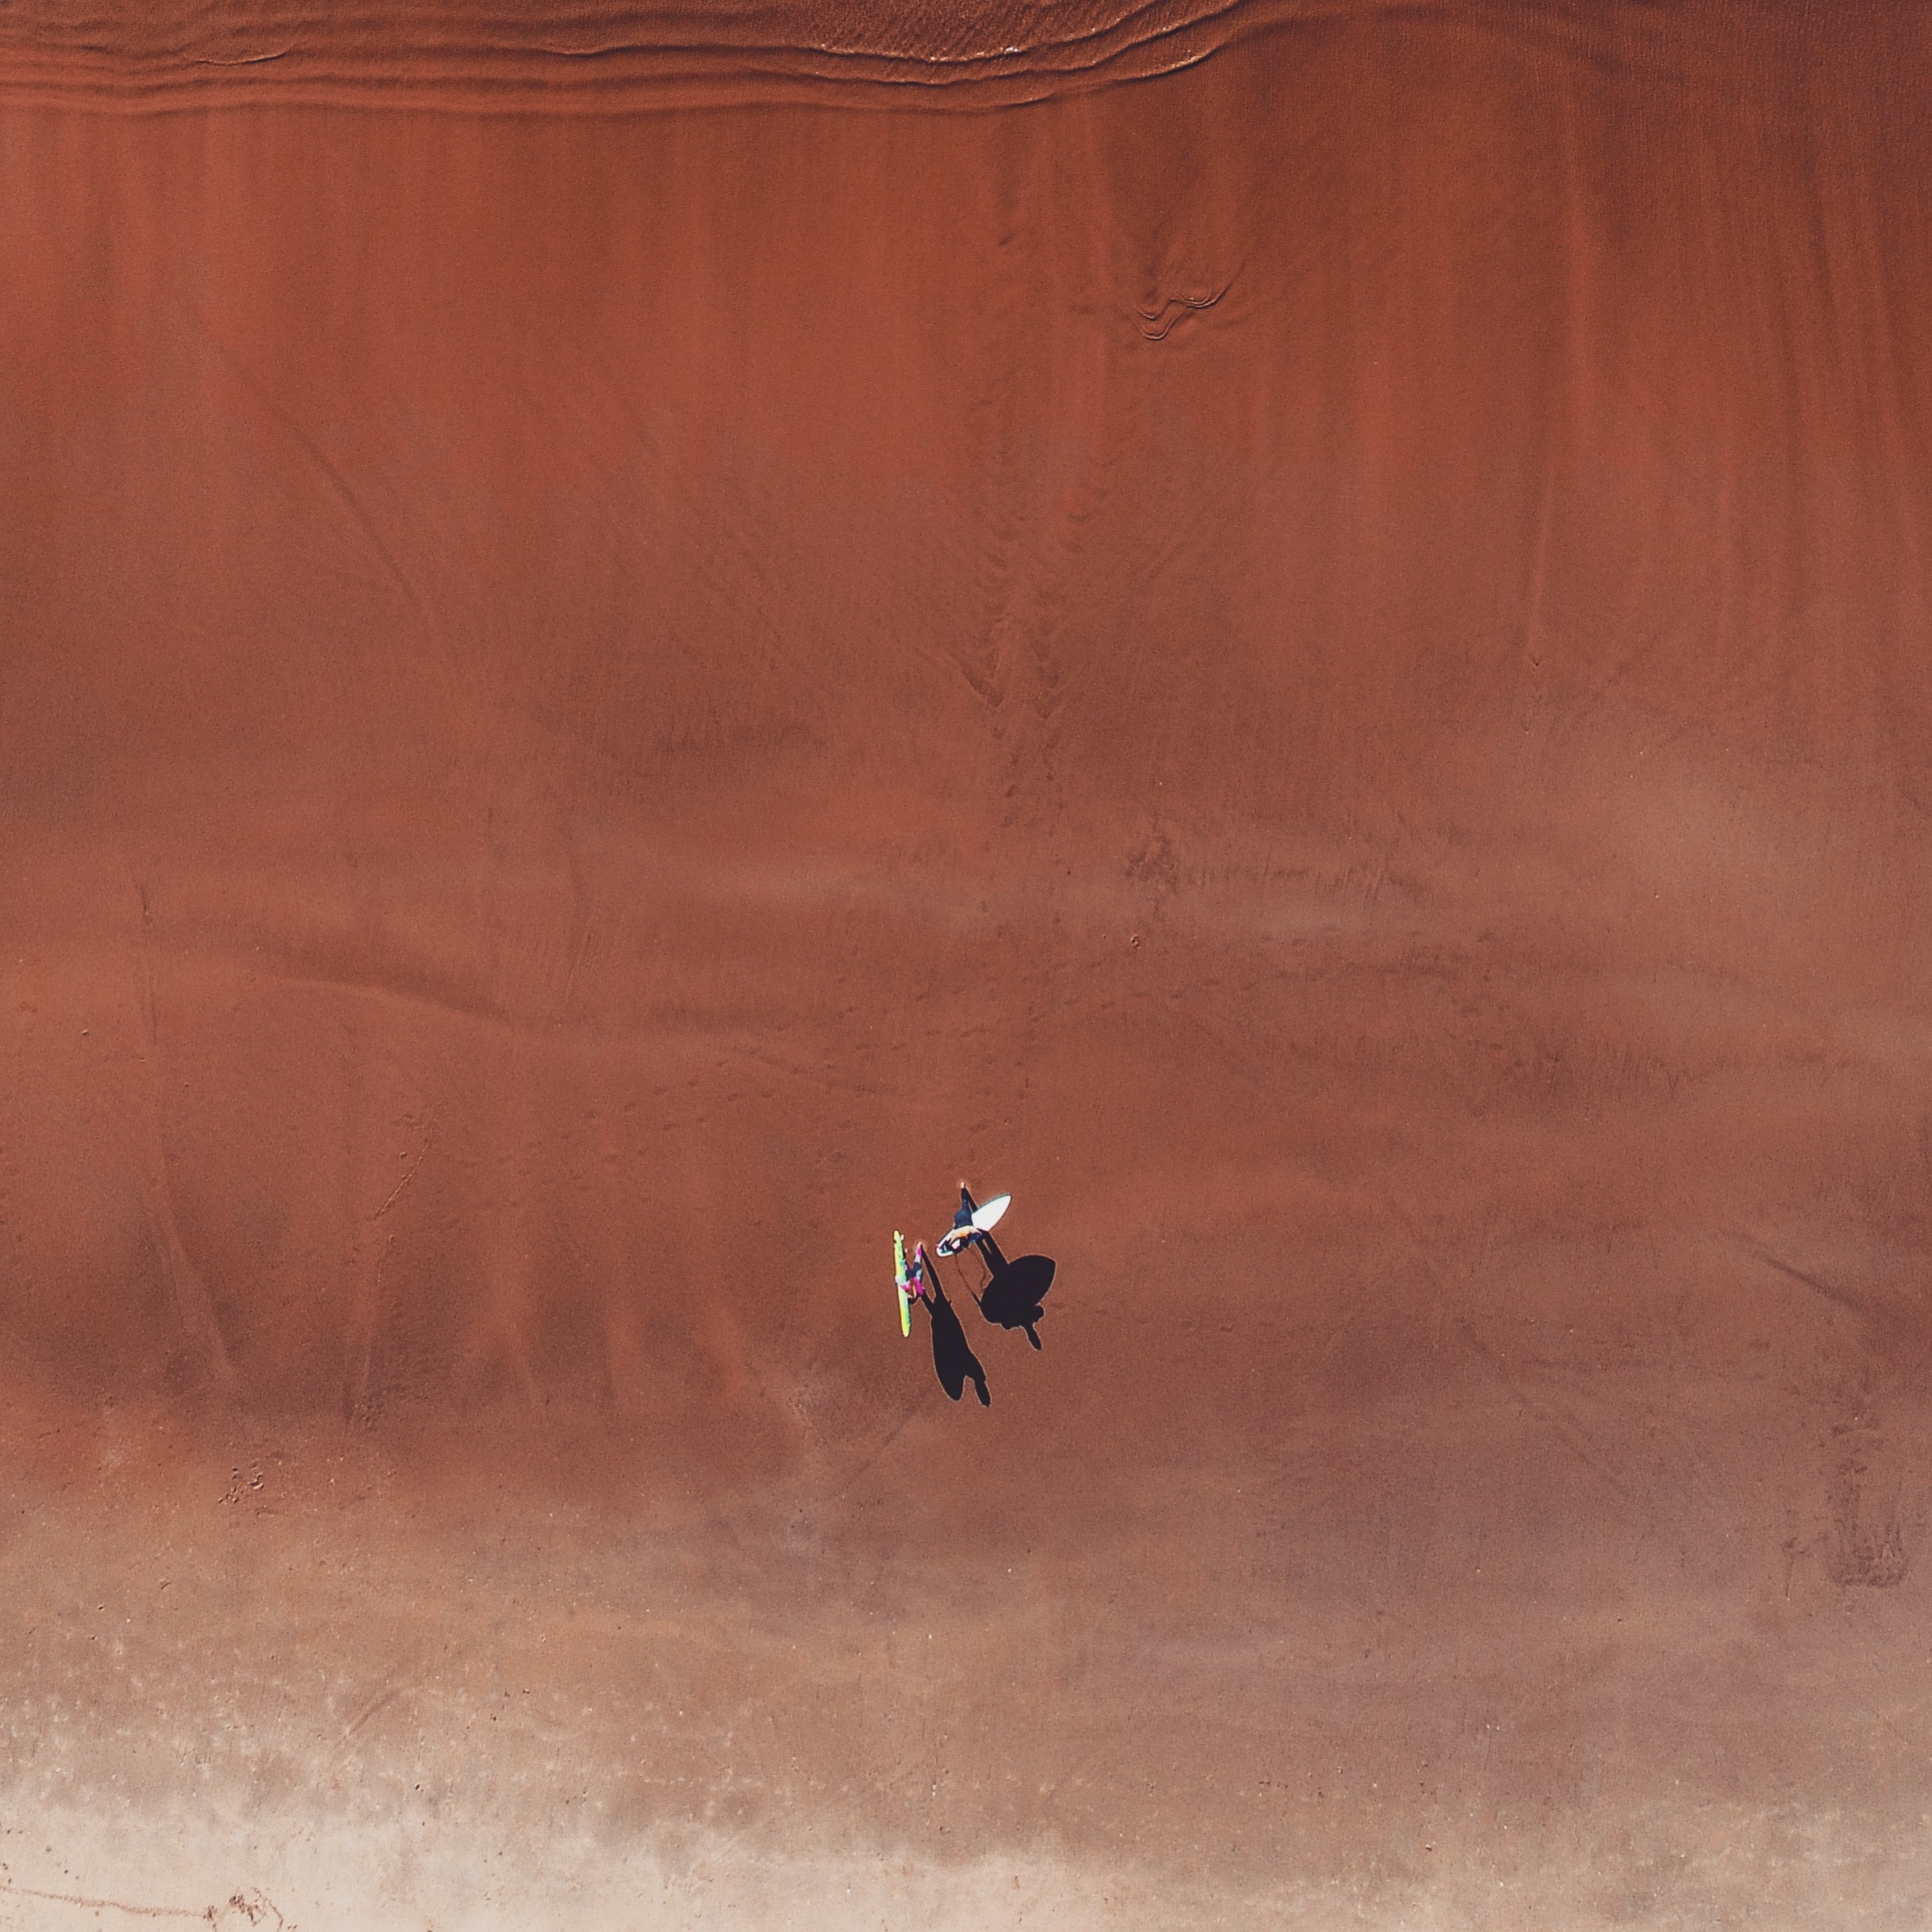 aerial photo of two person in desert